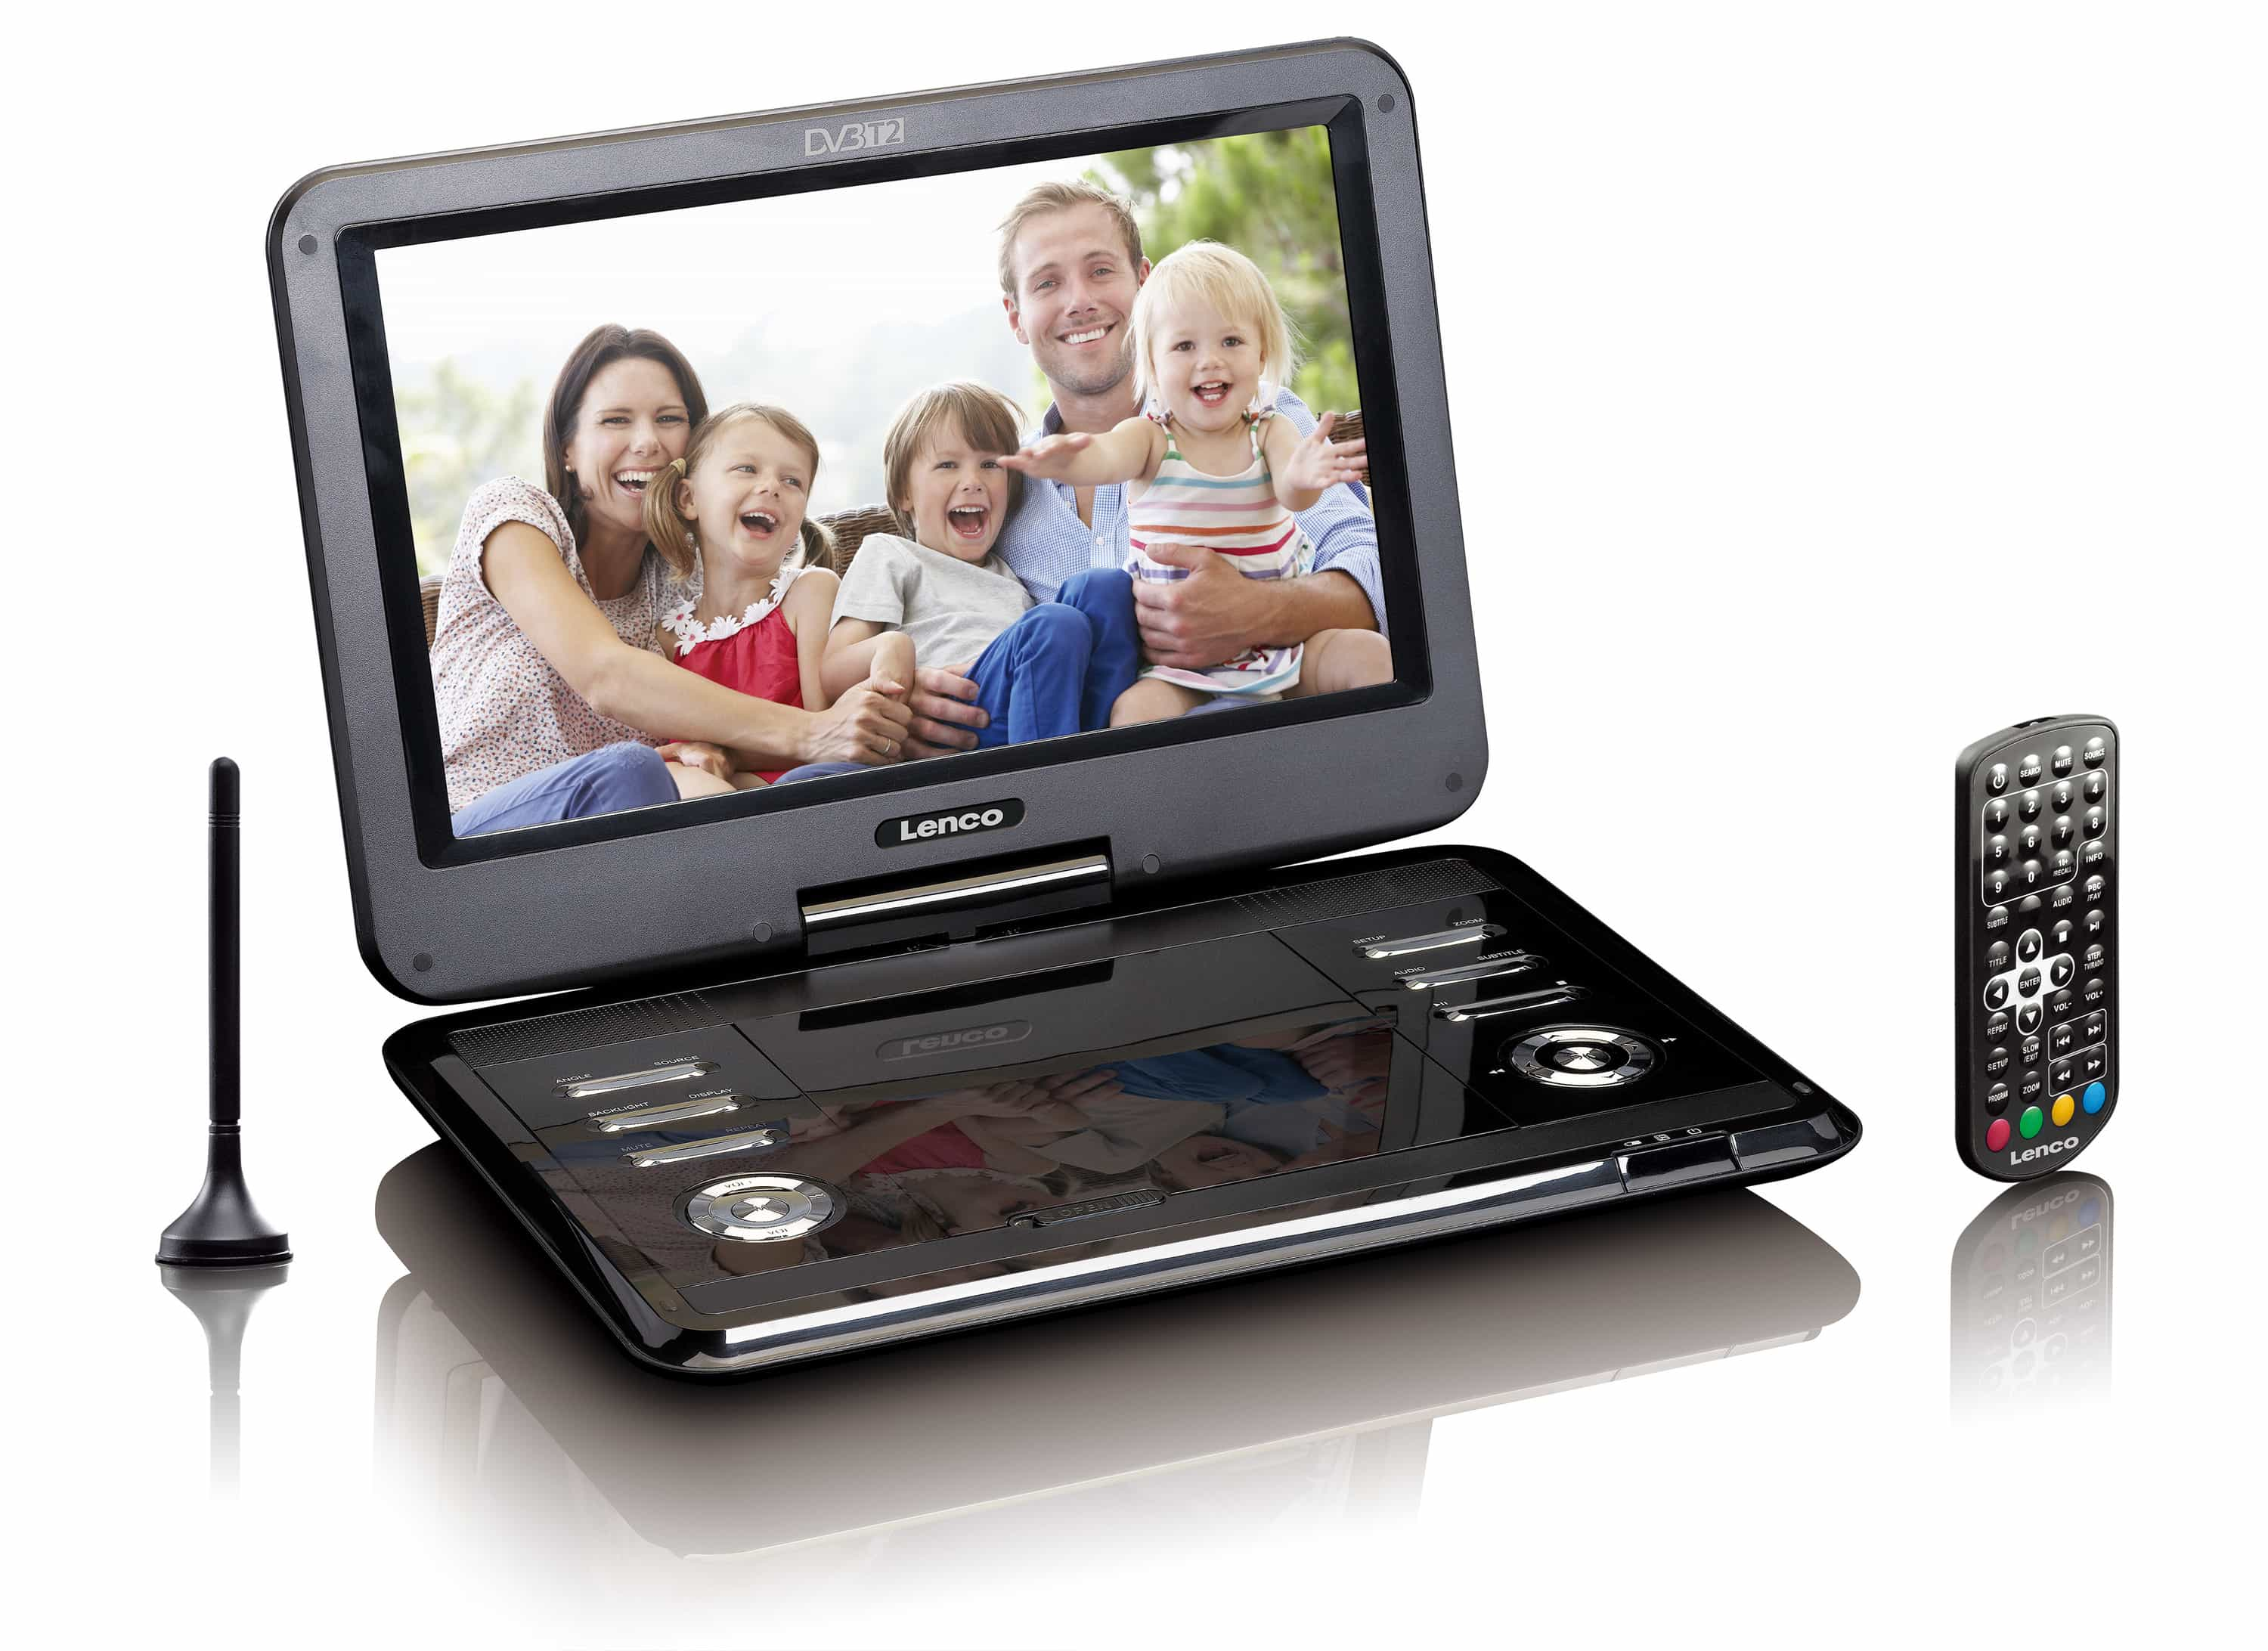 Lenco DVP-1273 portabler DVD-Player 29cm/11,6'' DVB-T2 HD USB SD 12V für 189,99 Euro